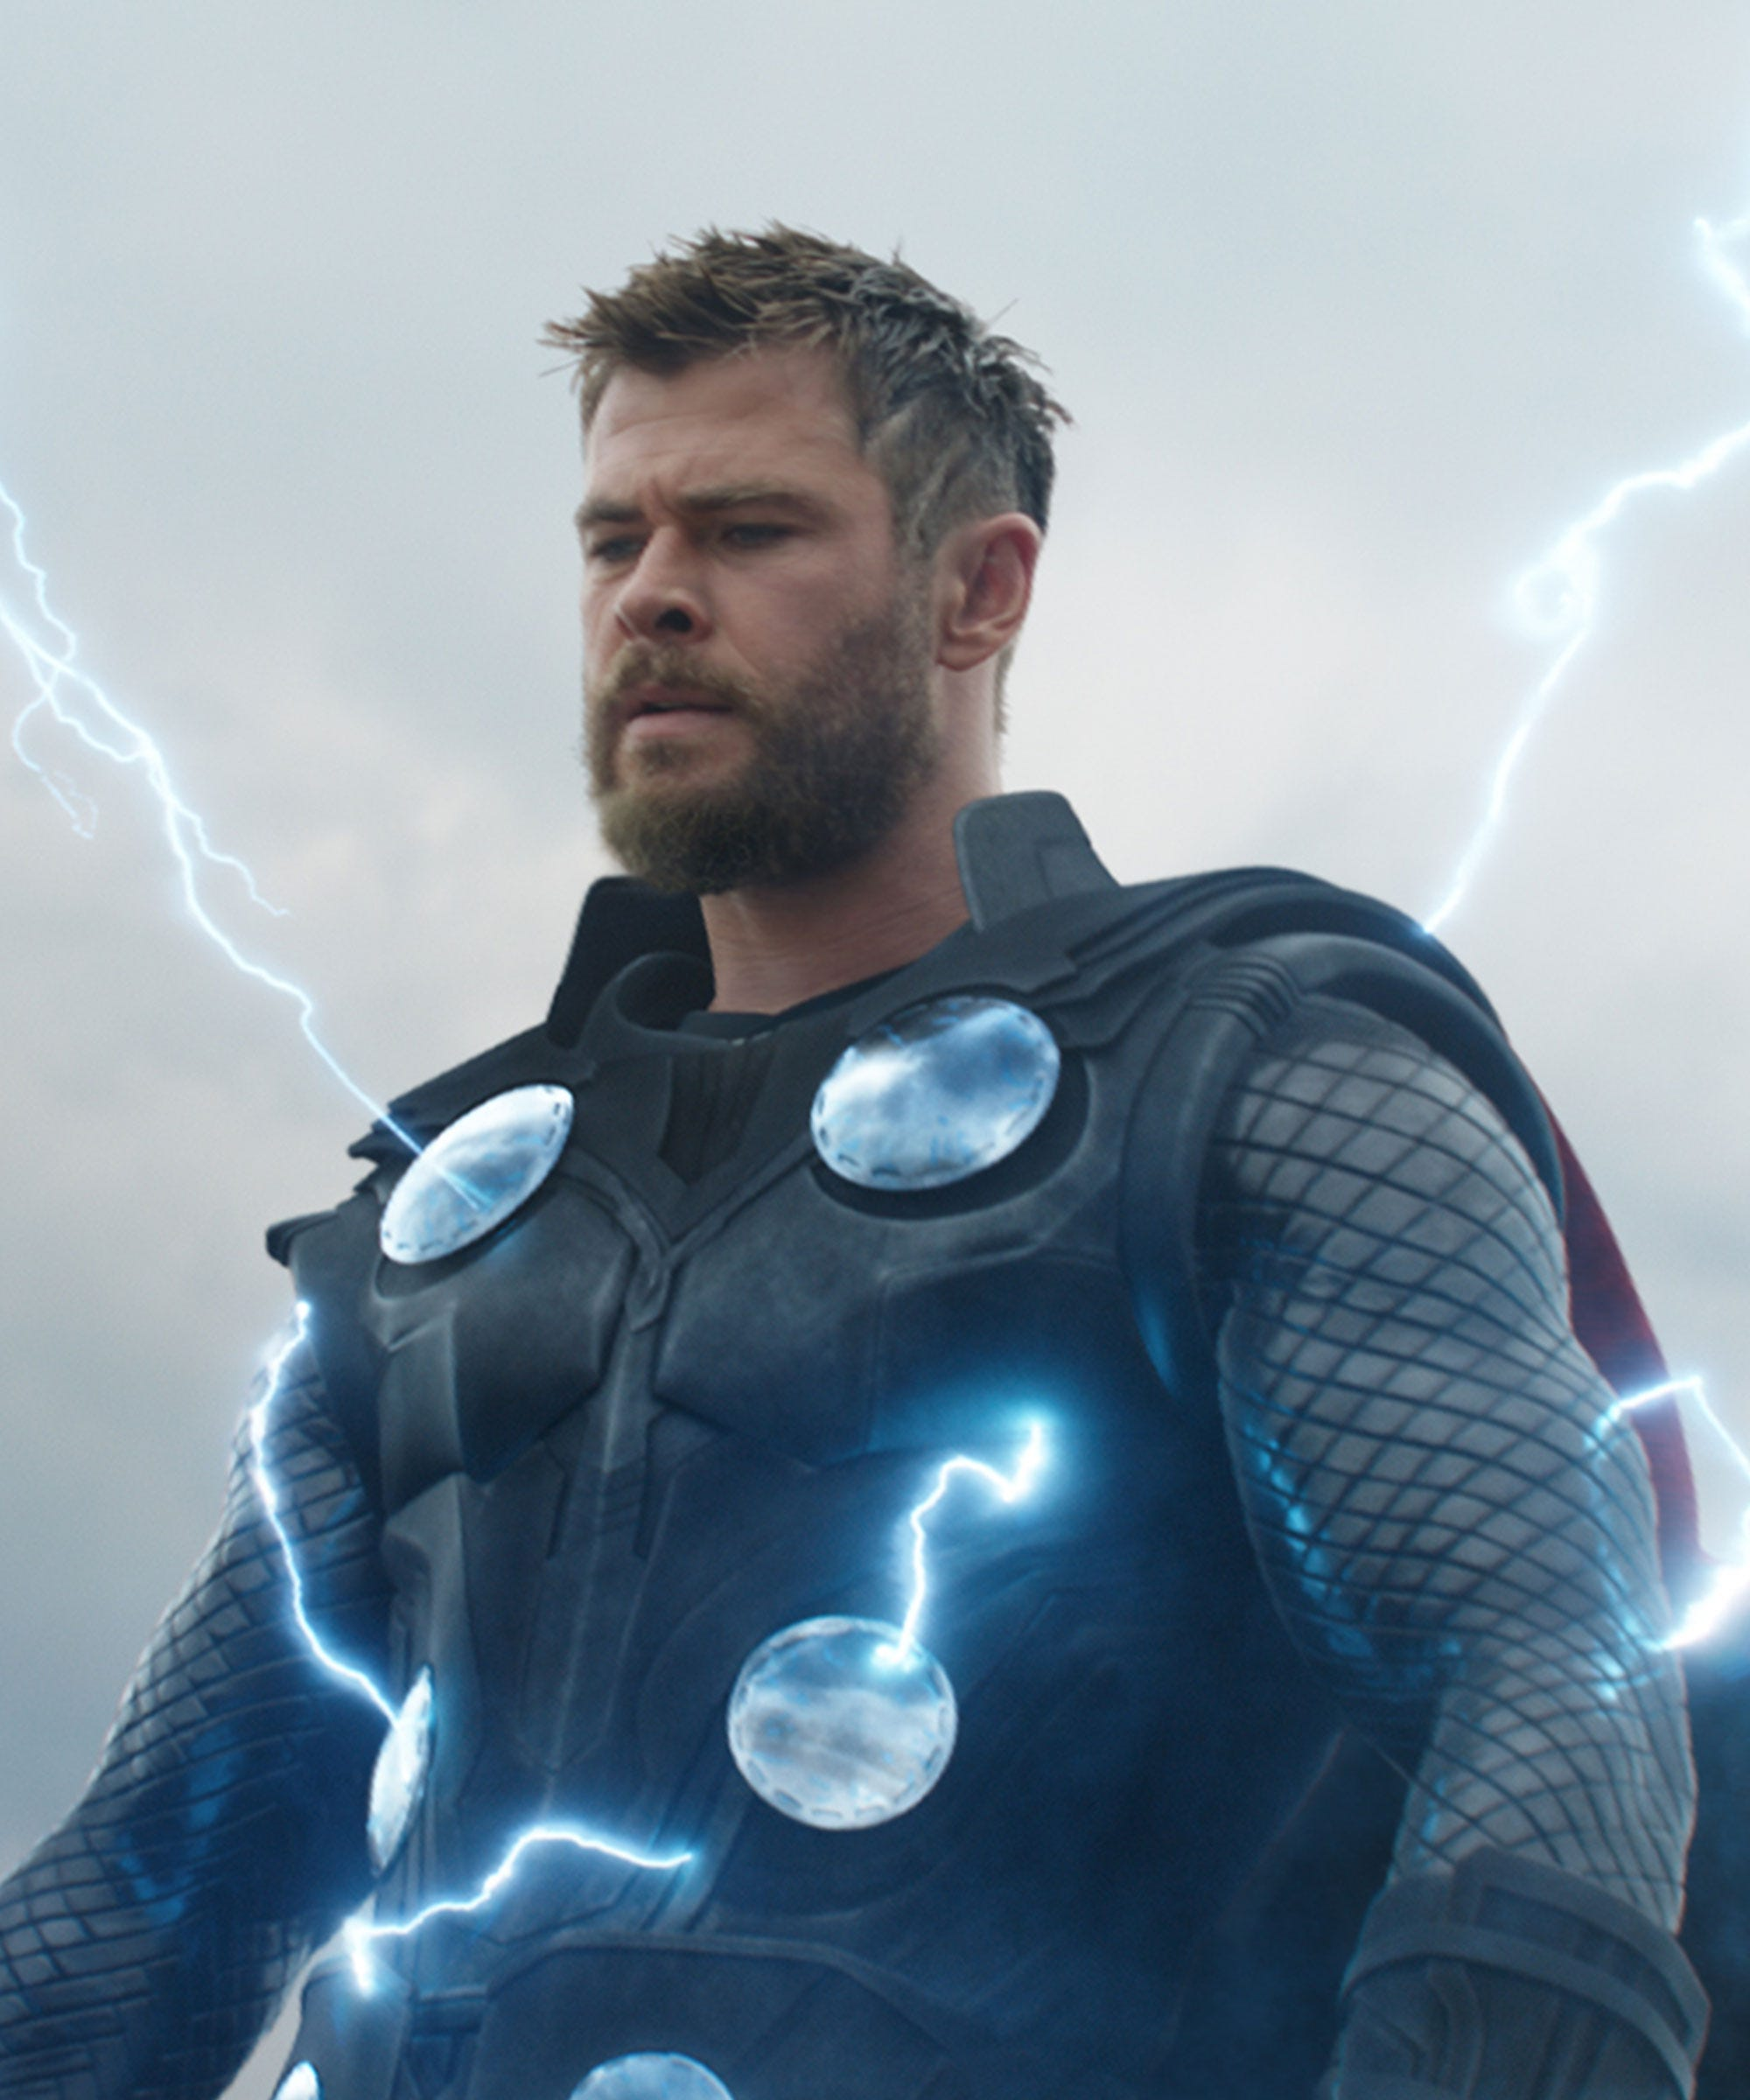 Looks Like Another Thor Movie Is Coming After Avengers: Endgame